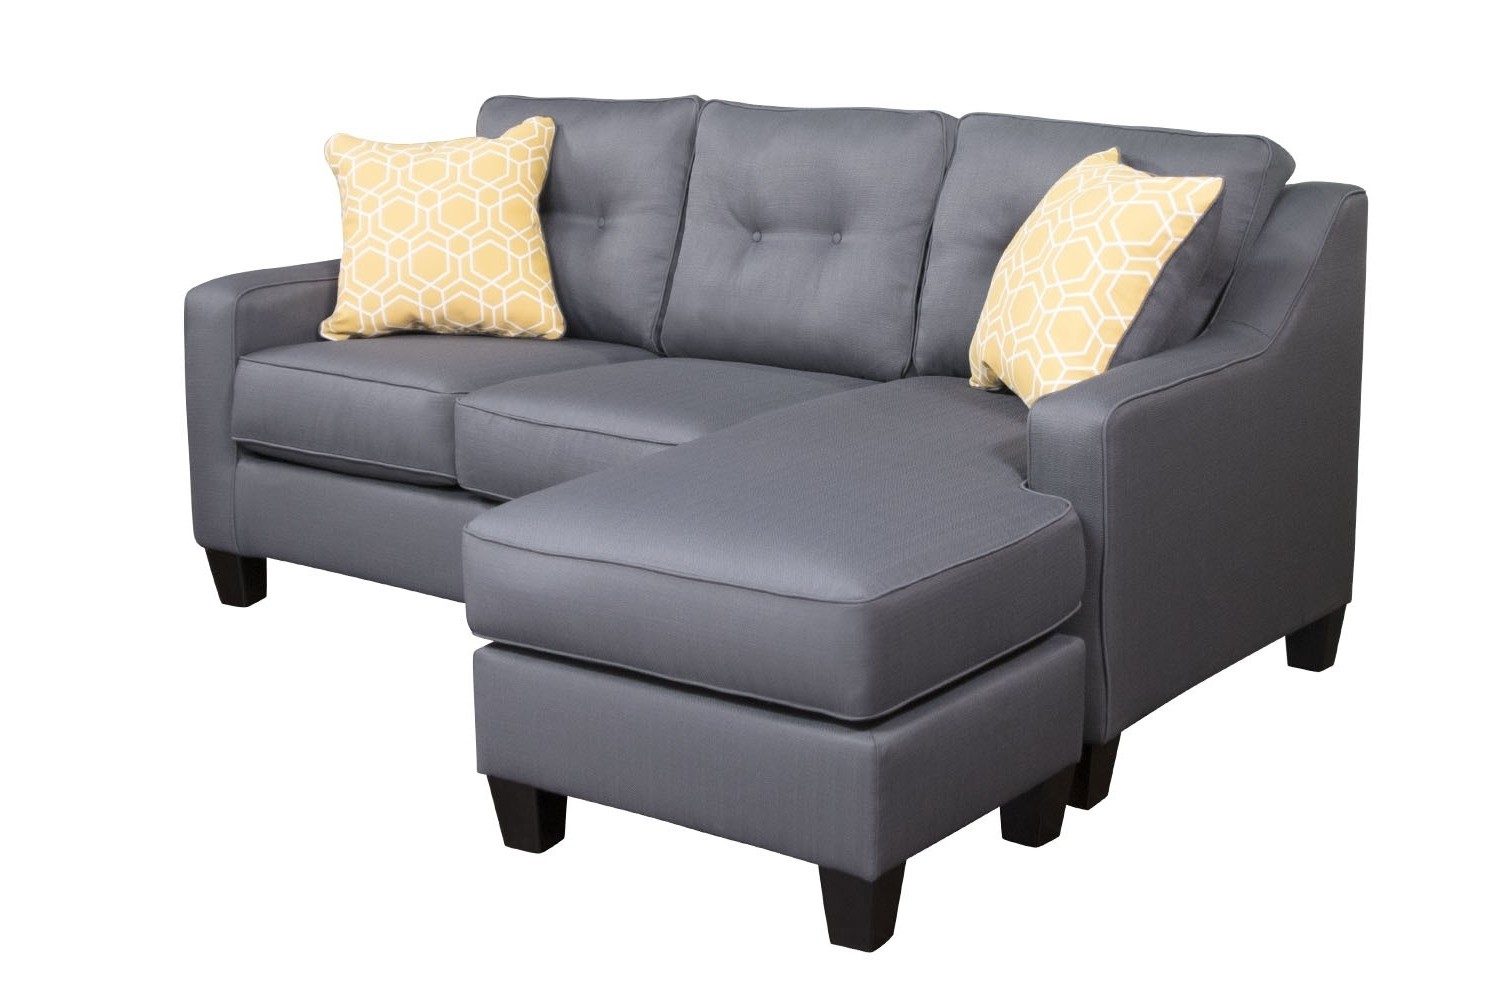 Mor Furniture For Less (View 10 of 15)